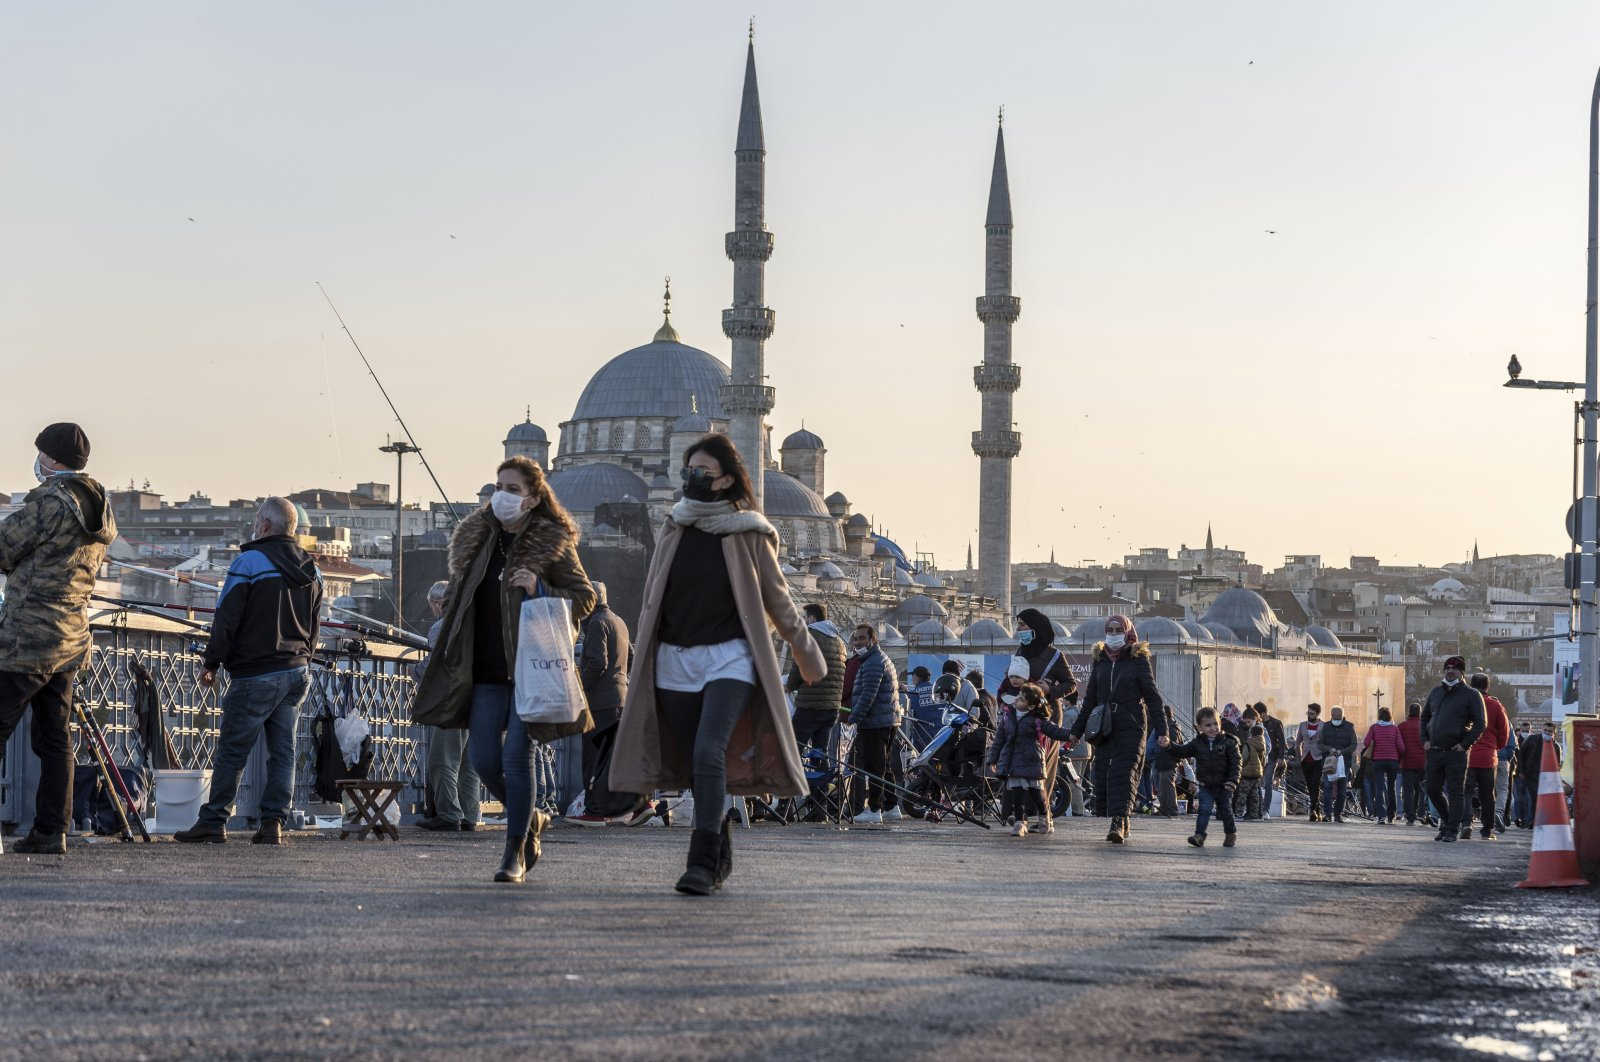 People wearing protective face masks walk on Galata bridge during the coronavirus disease (COVID-19) pandemic, Istanbul, Turkey, Nov. 16, 2020. (Getty Images)